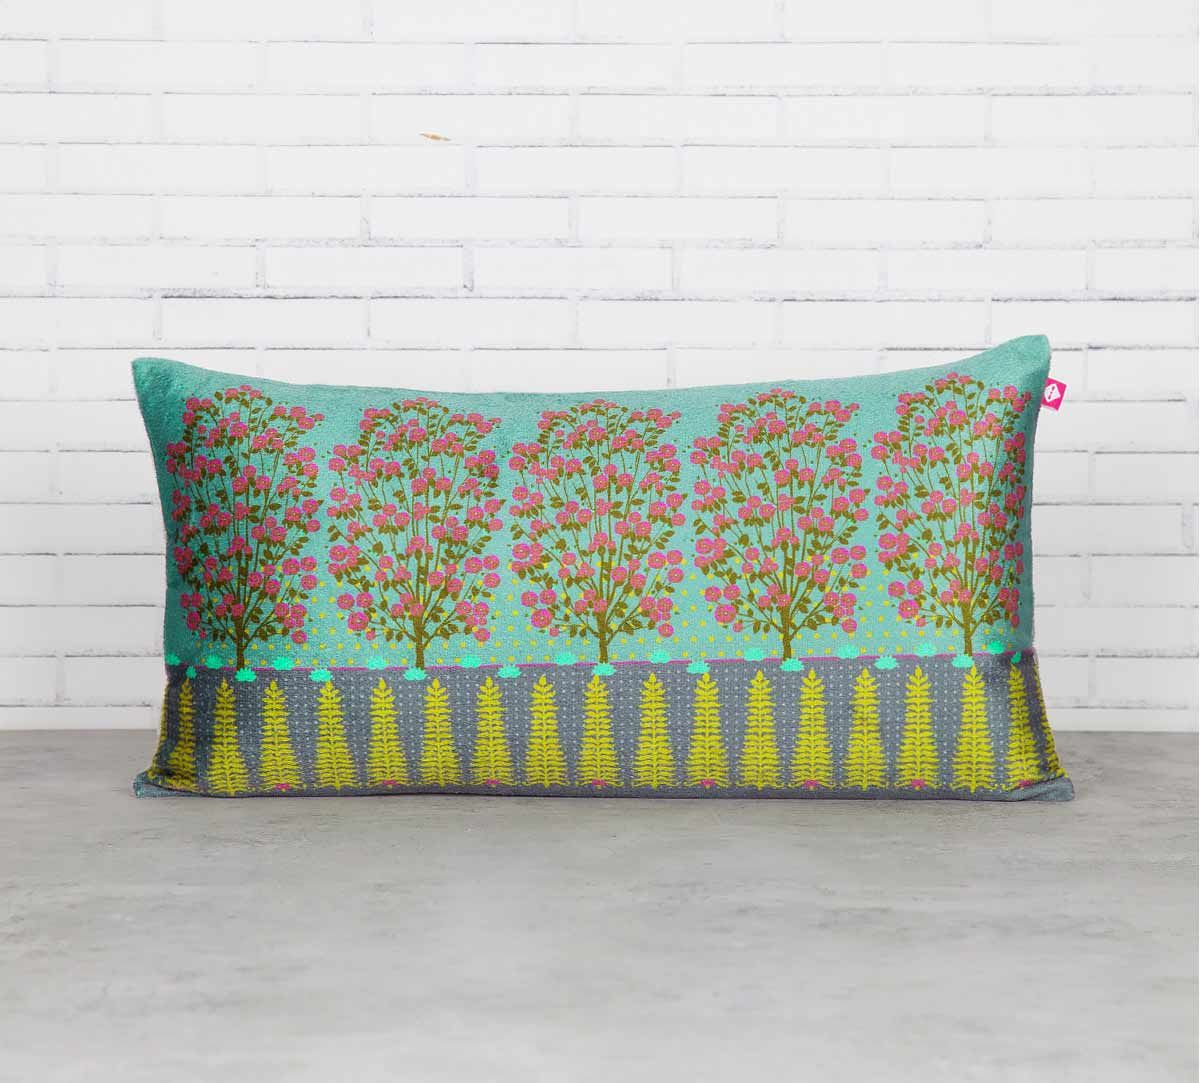 Embroidered Cushions Online On India Circus